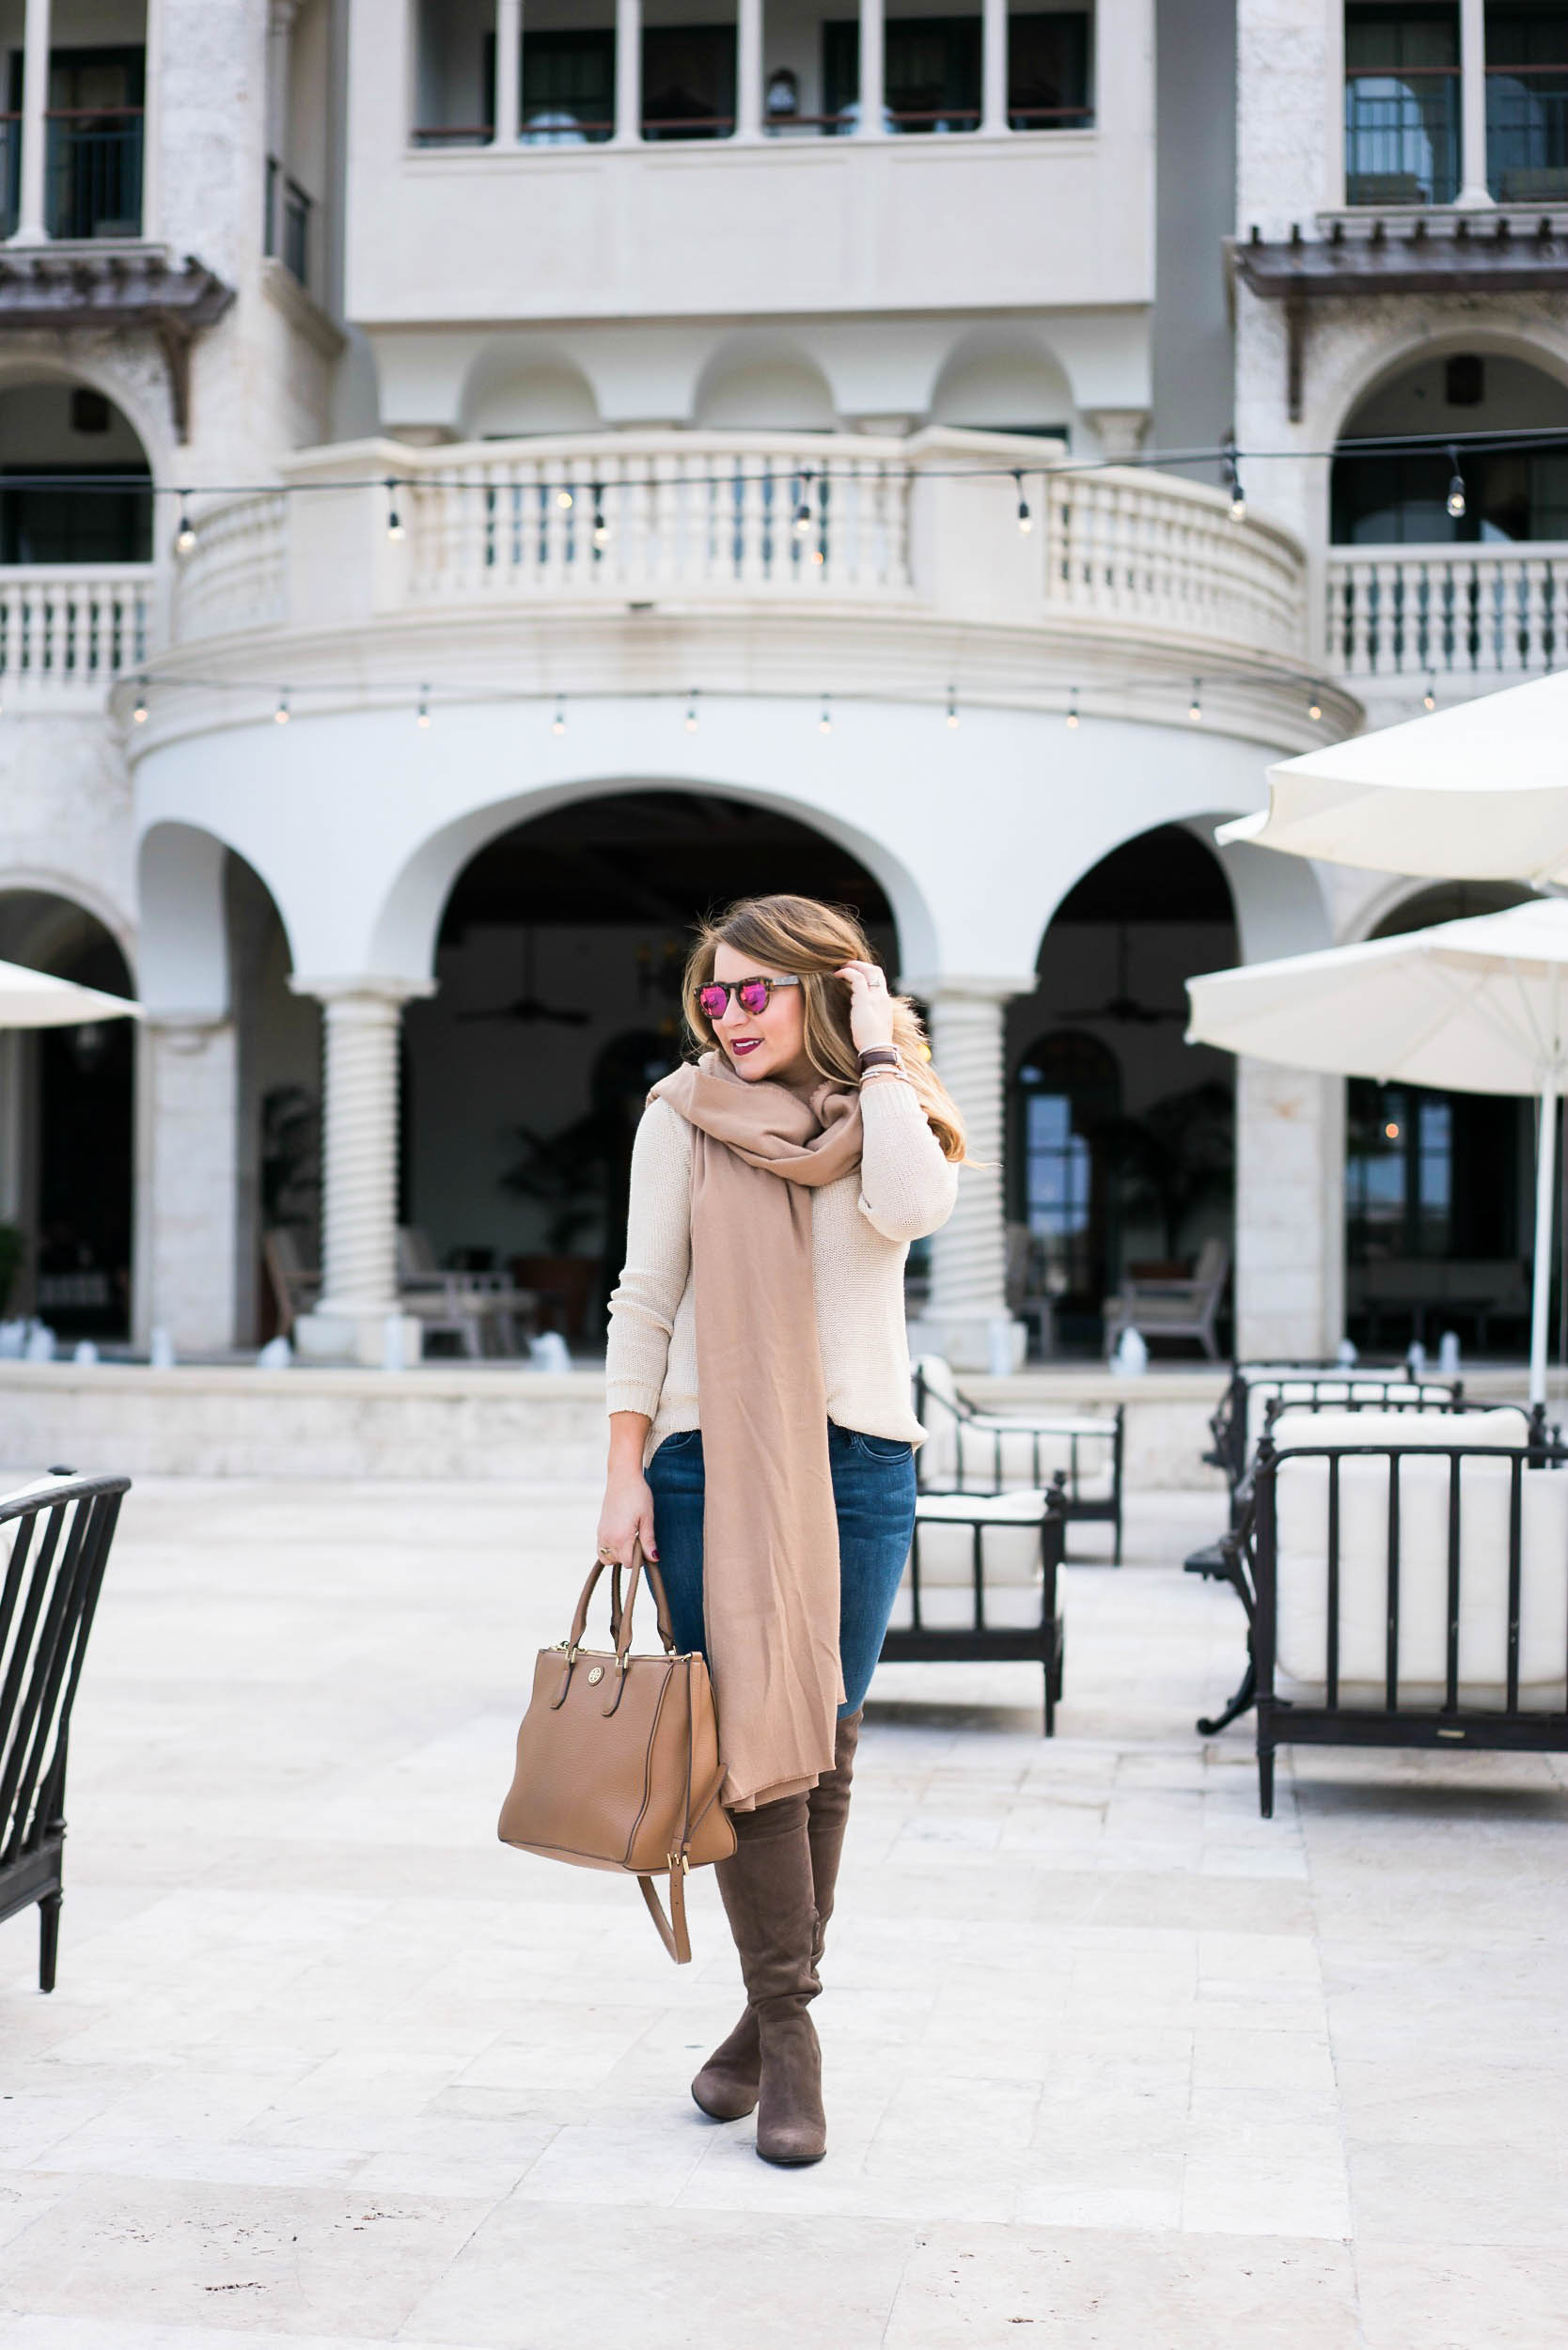 Neutral Looks for Winter | coffeebeansandbobbypins.com | @amy_cbandbp